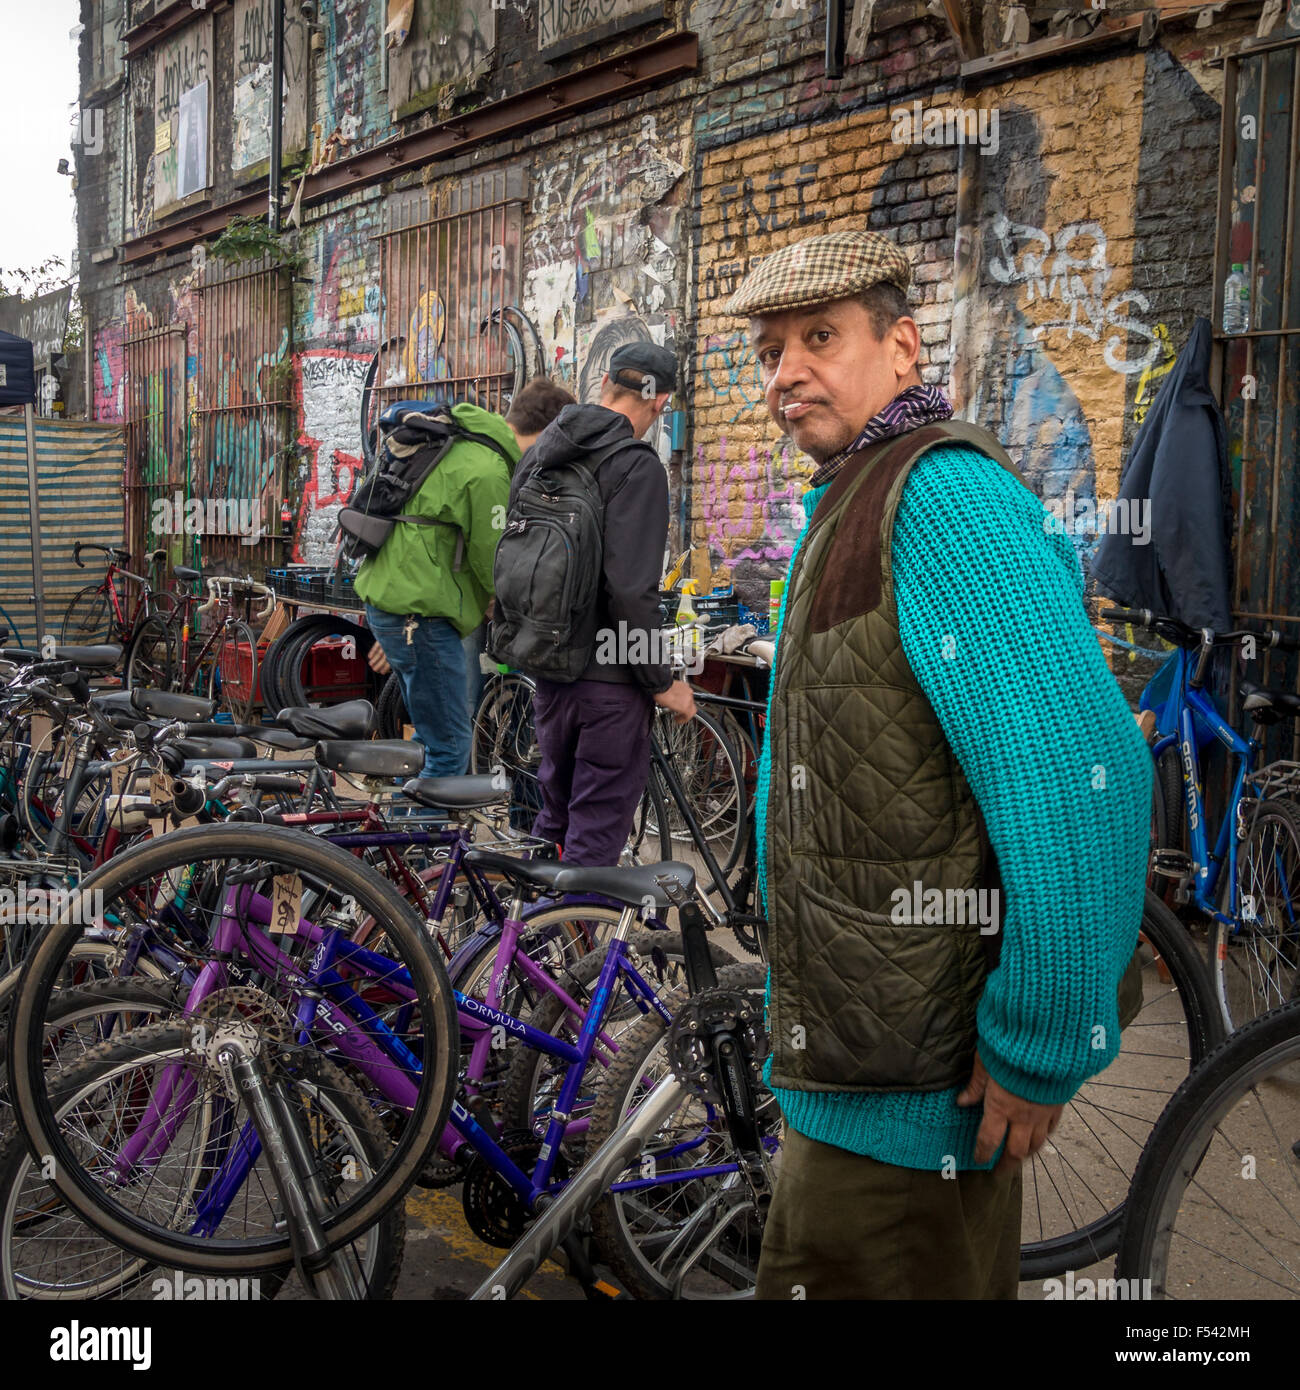 Street seller selling second hand bikes on Sclater Street, off Brick Lane in the East End of London. - Stock Image